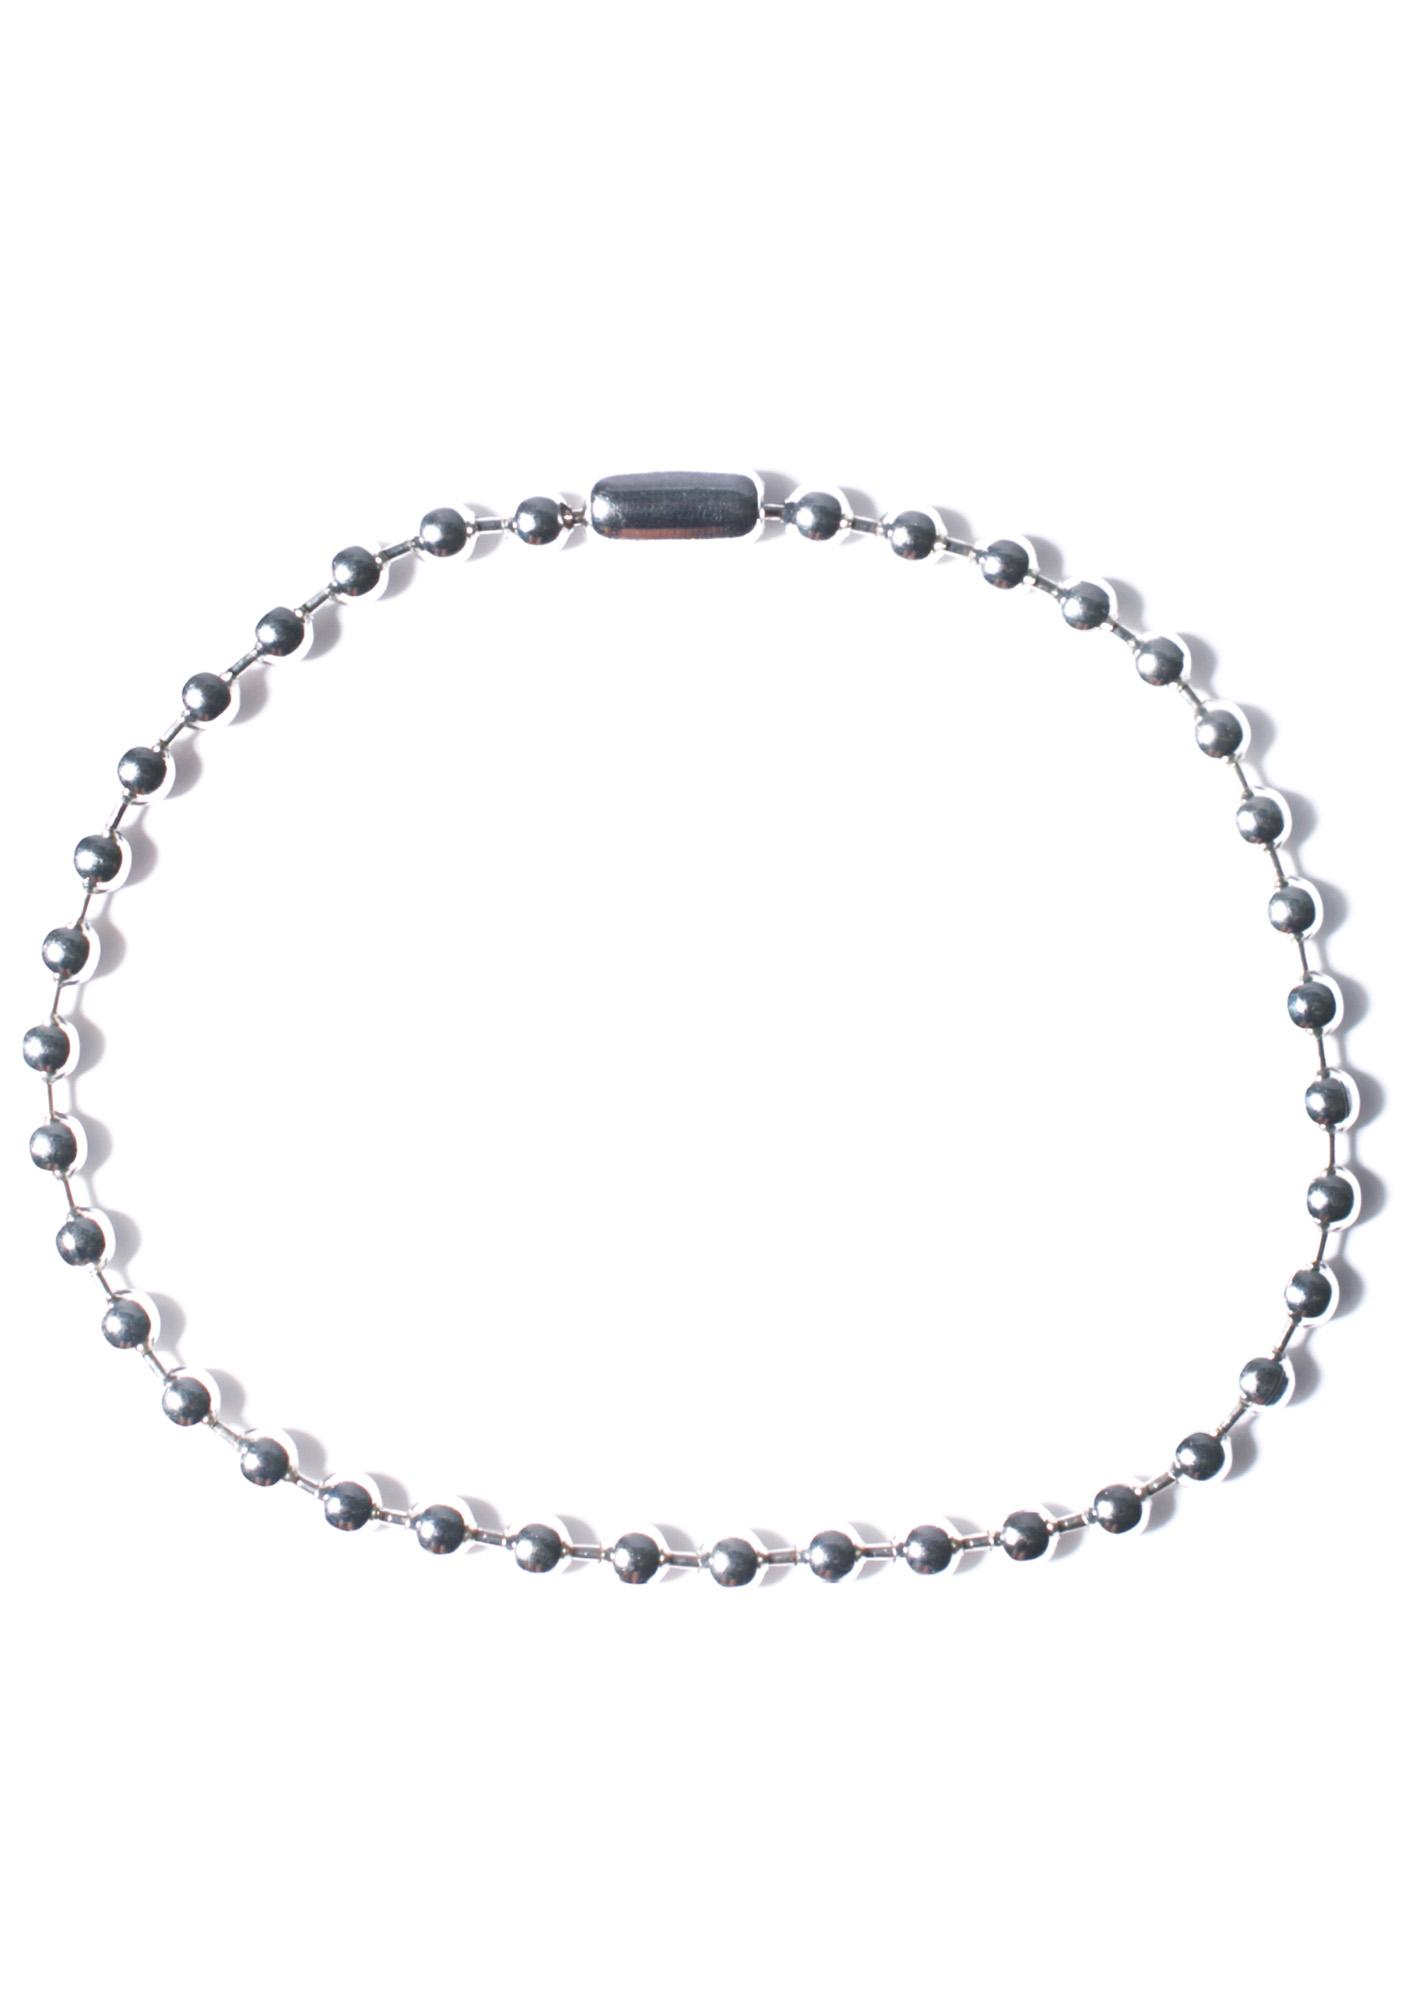 Vidakush Ball Chain Choker